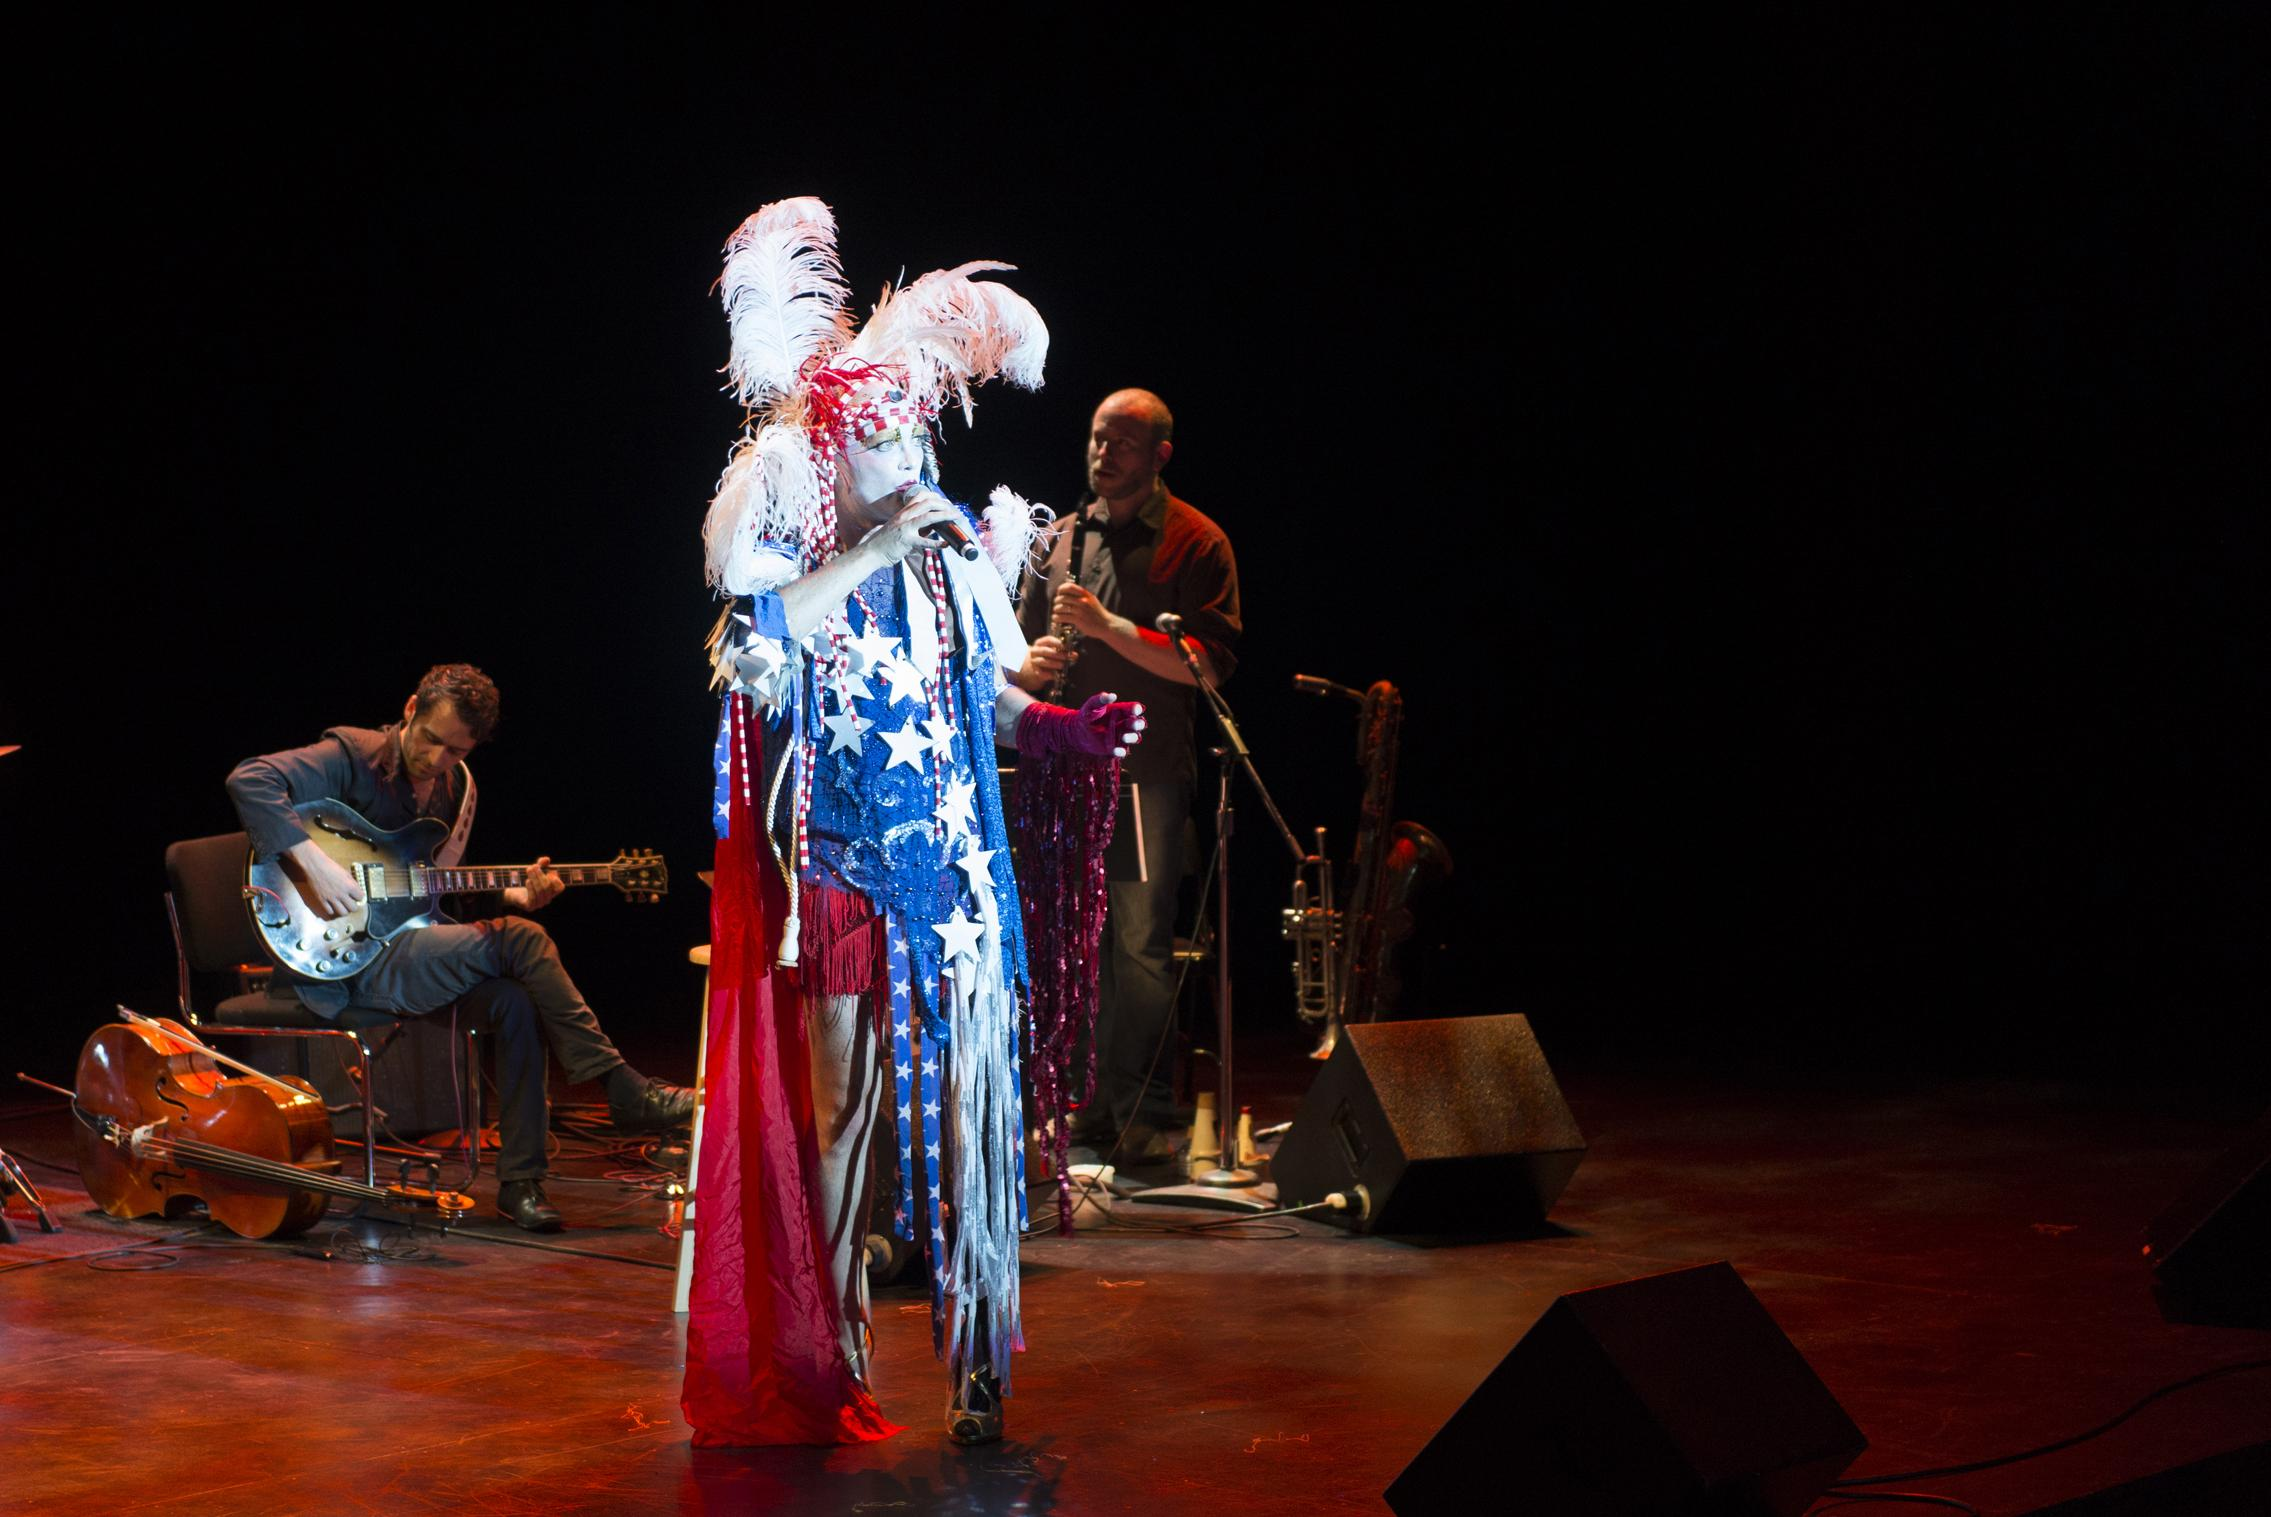 A person wearing a costume with a cape in red, white, and blue, and a feathered headdress sings on stage in the spotlight.